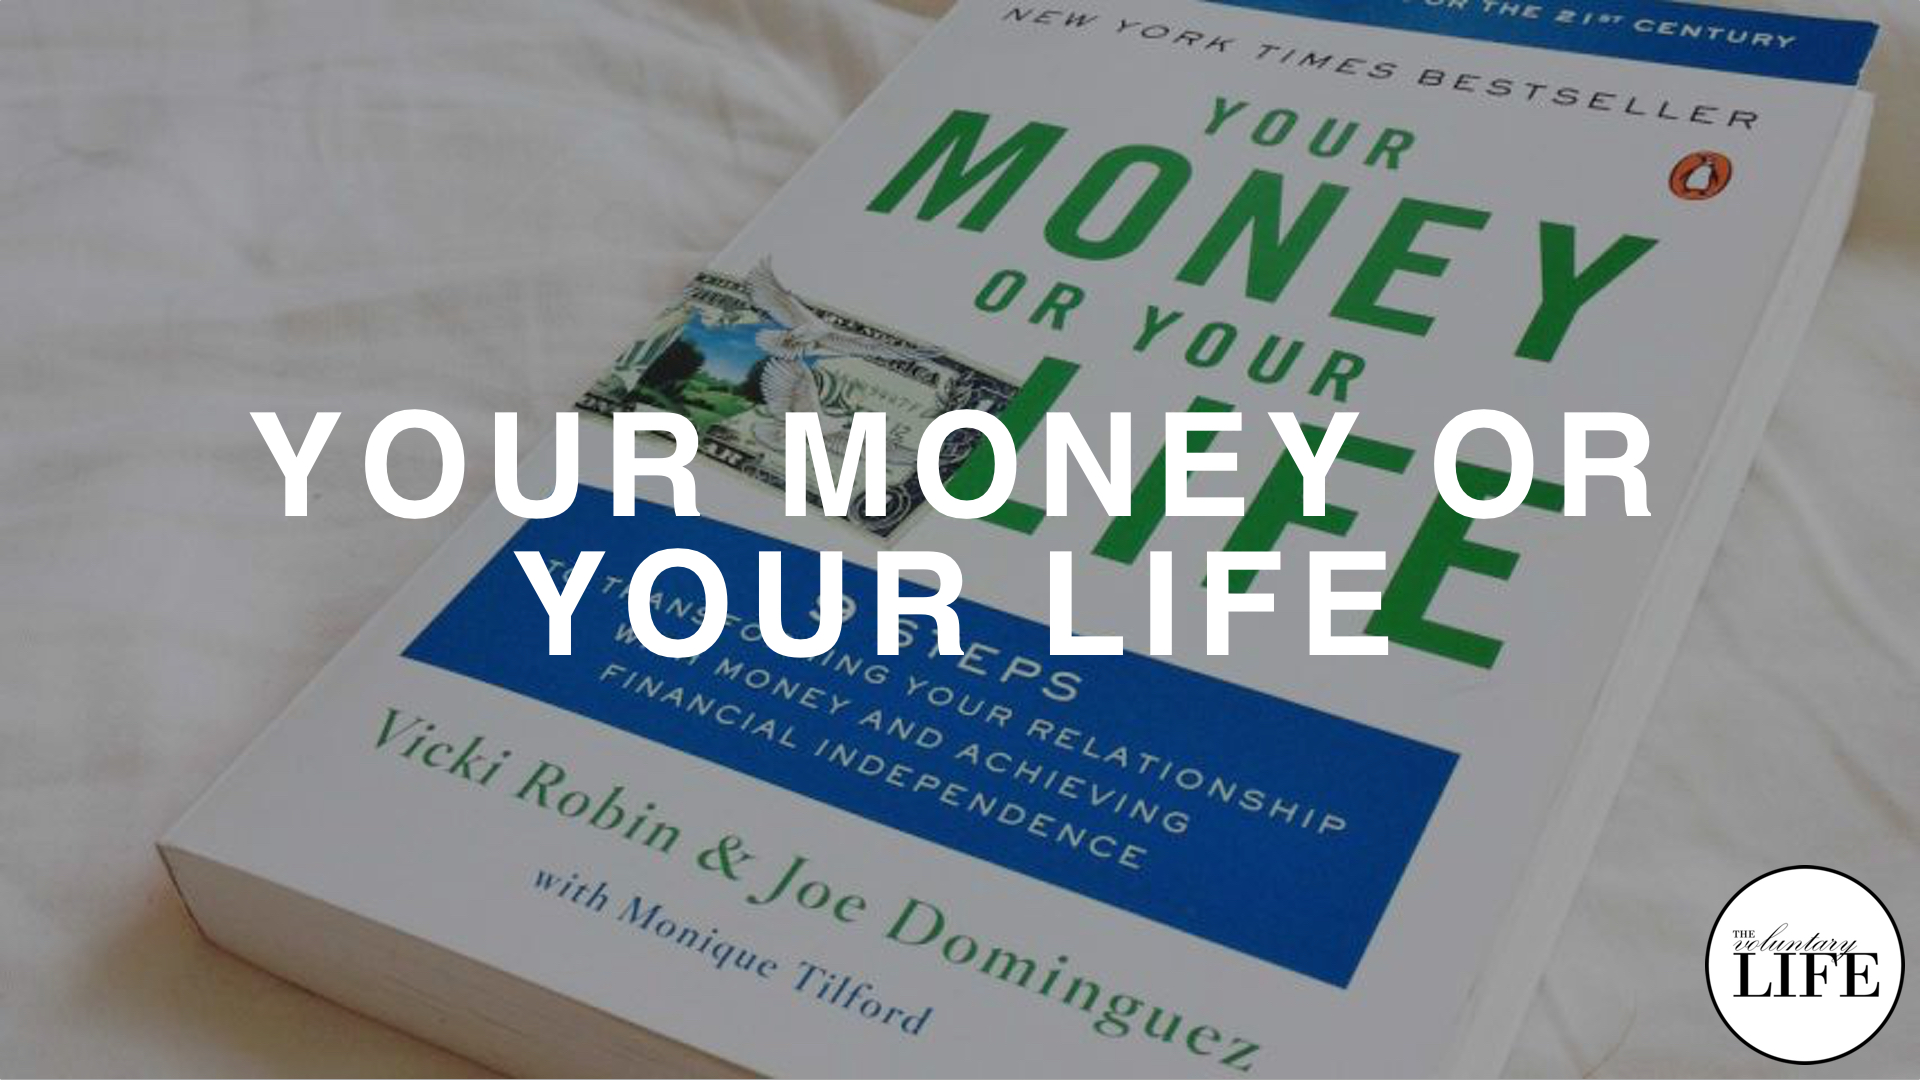 194 Your Money Or Your Life by Vicki Robin and Joe Dominguez